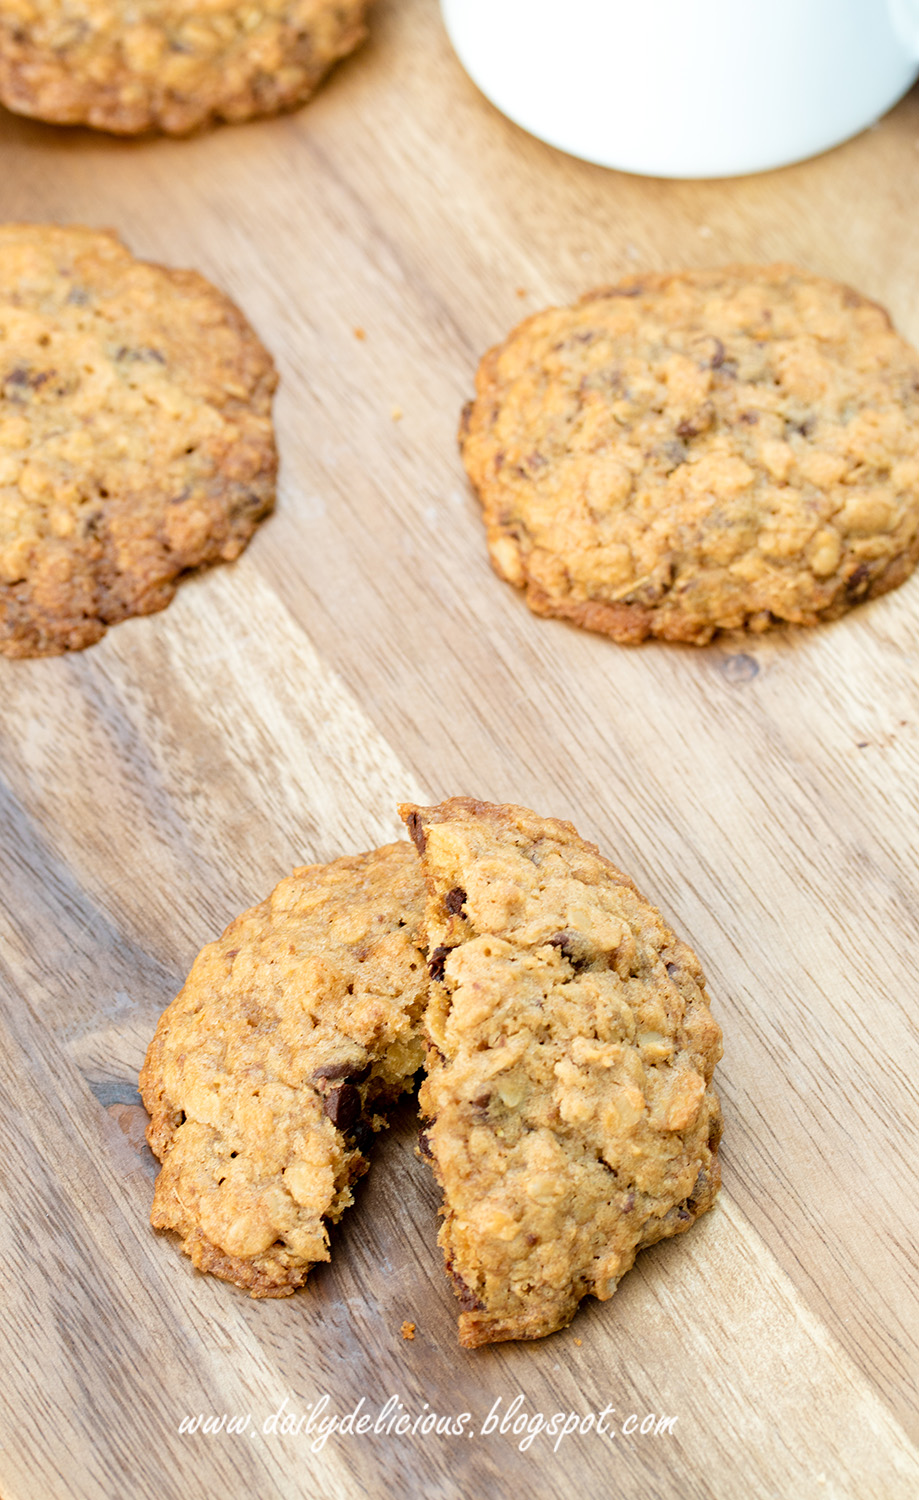 dailydelicious: Chocolate chip oatmeal cookies